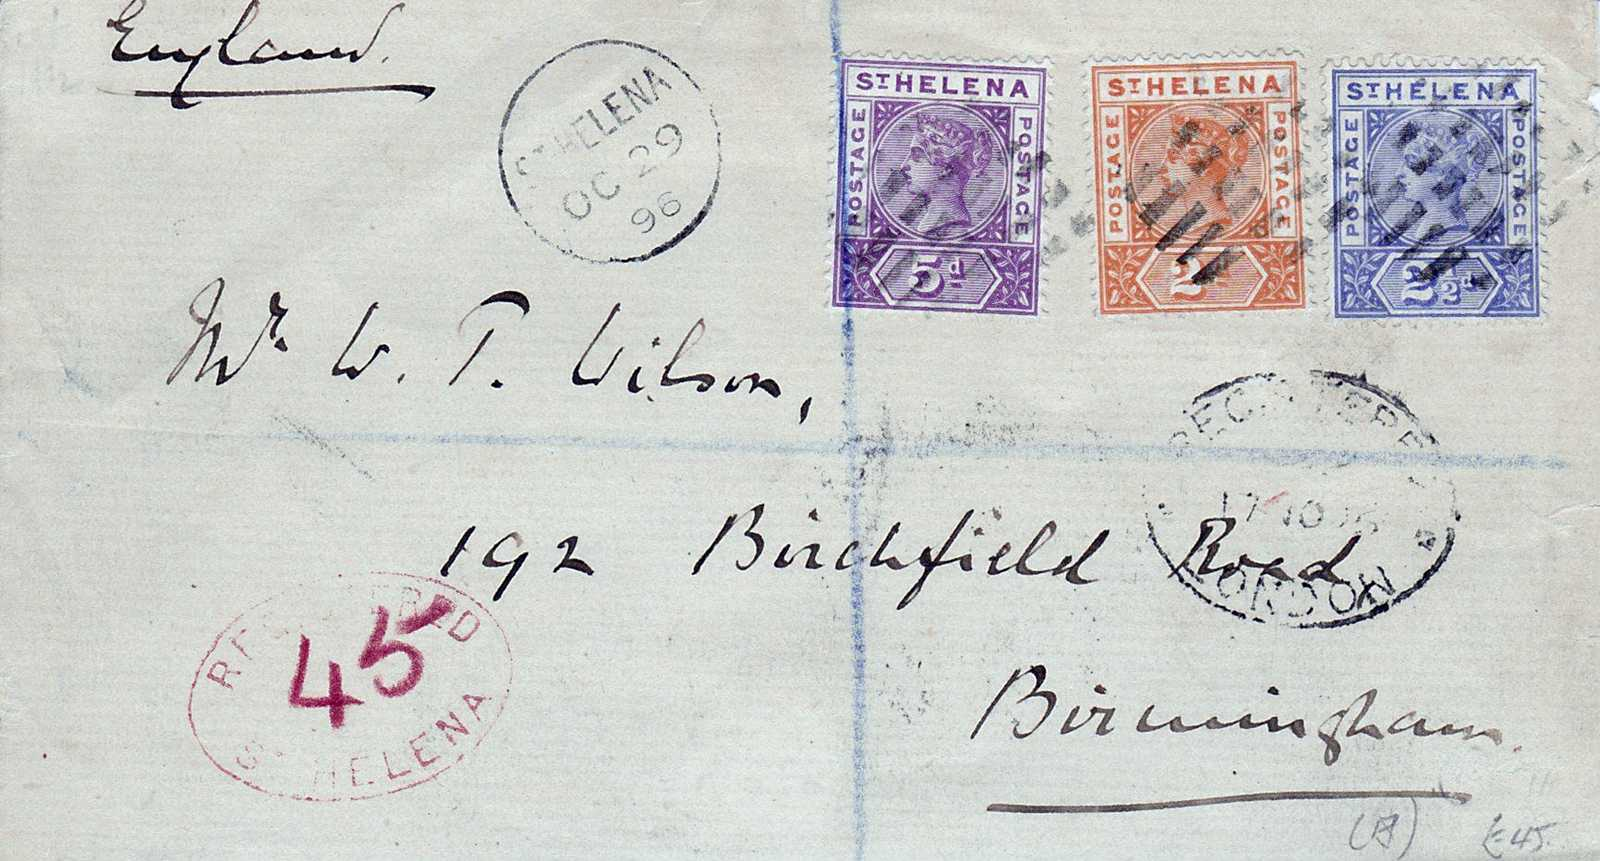 We believe this is intended as a First Day Cover because the postage paid (£0.04/* */) far exceeds the cost of a letter to anywhere in 1896! Saint Helena Island Info Postage Stamps